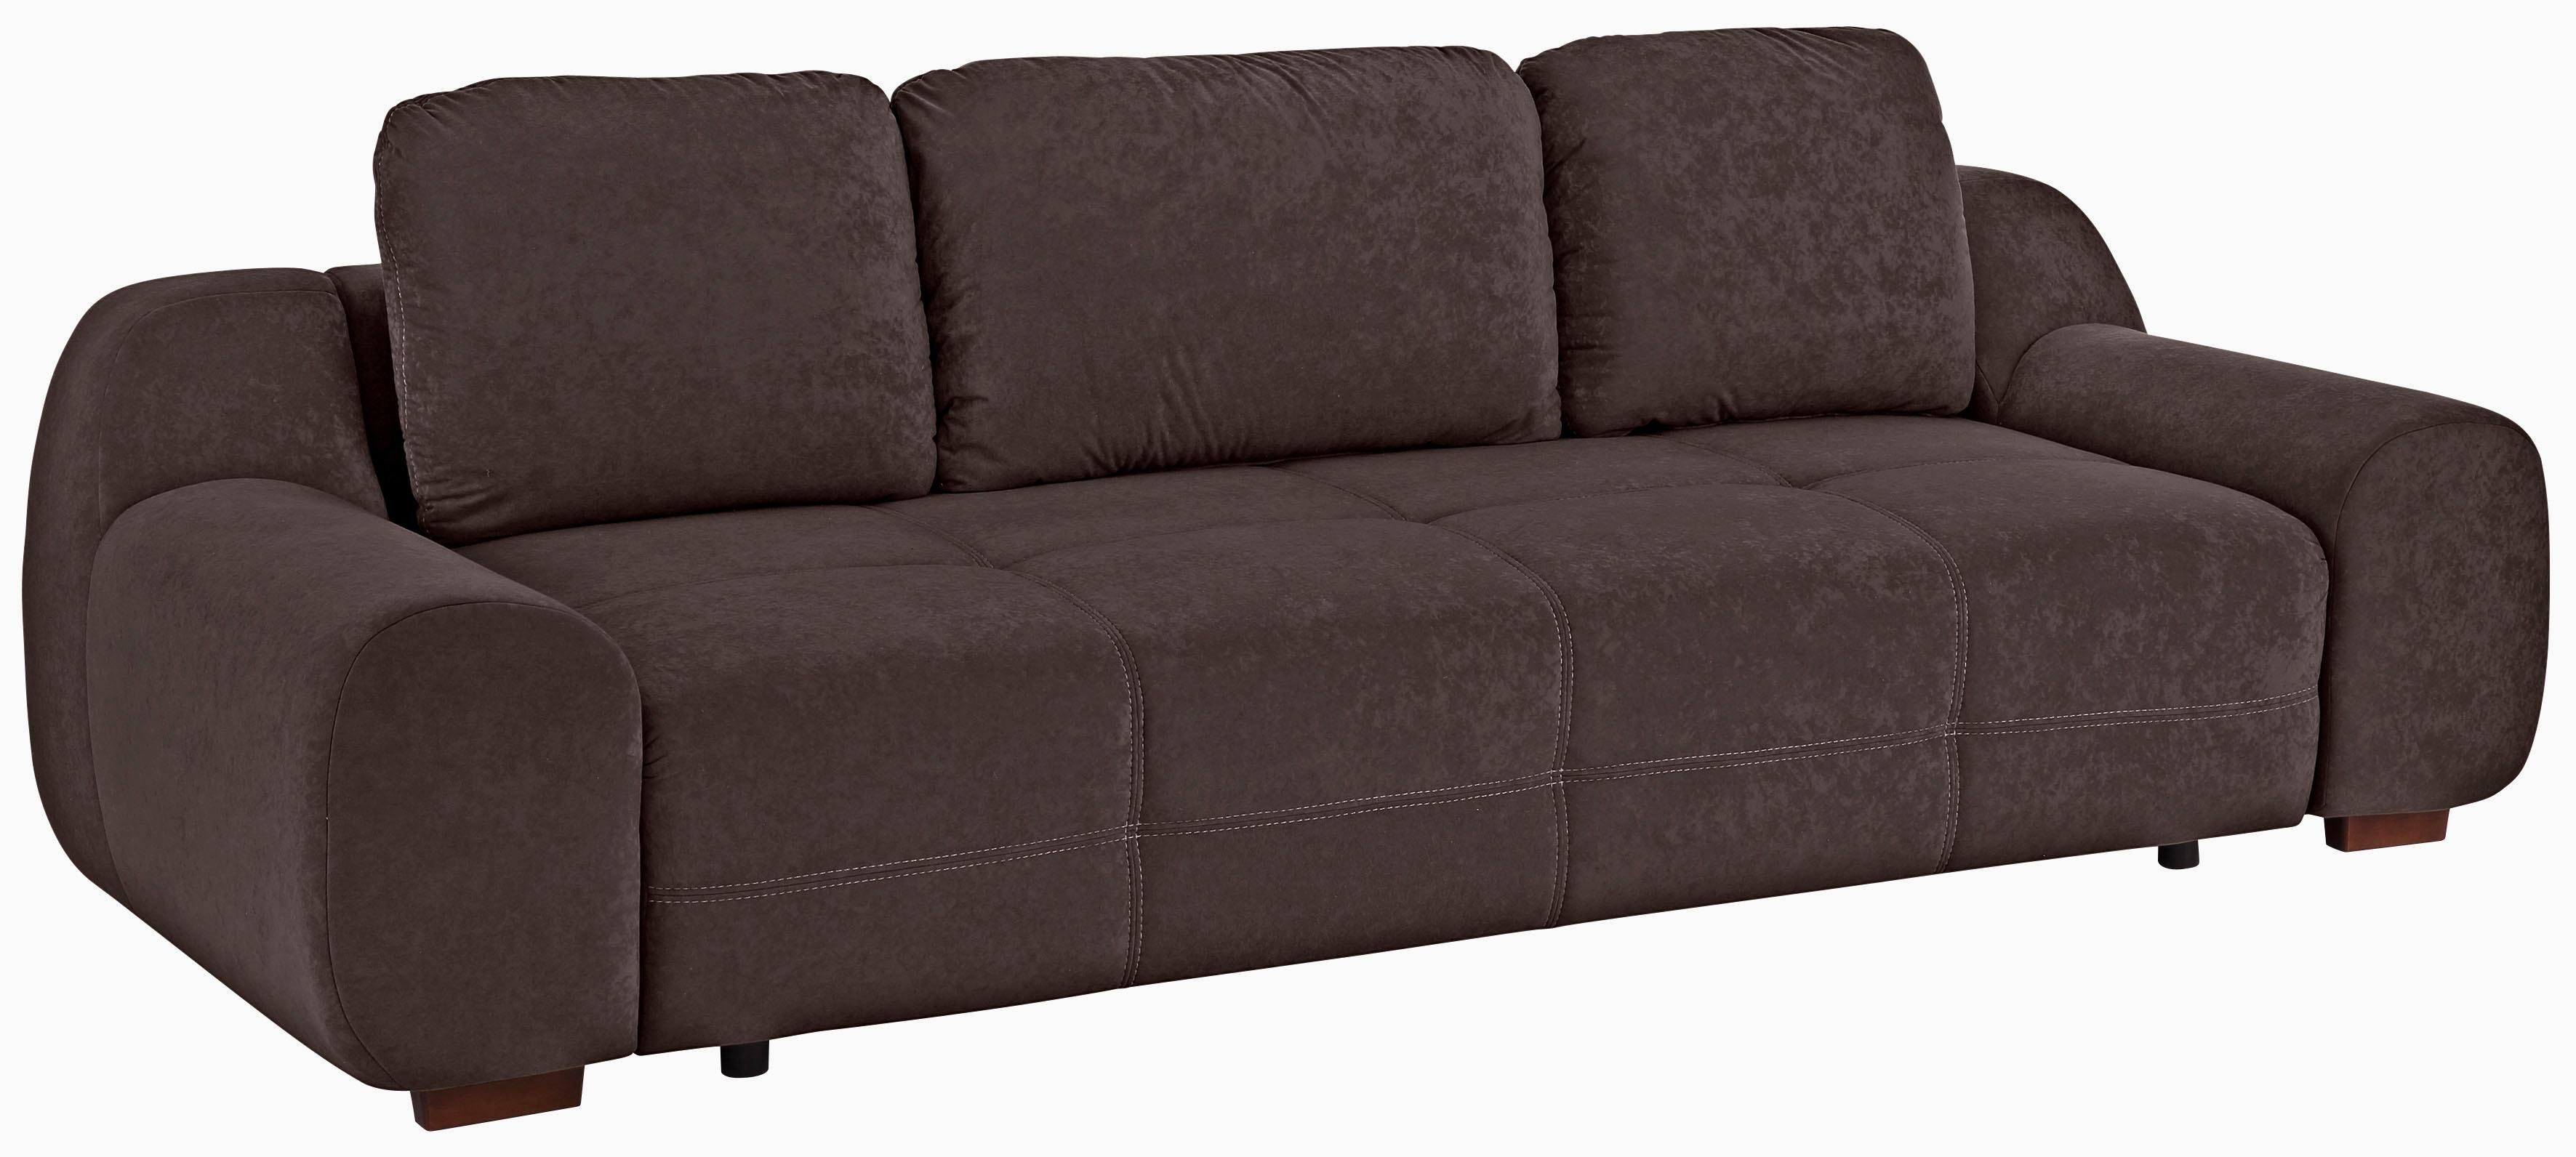 Home Affaire Big Sofa Banderas Auch Mit Bettfunktion - Otto Sofa Home Affaire